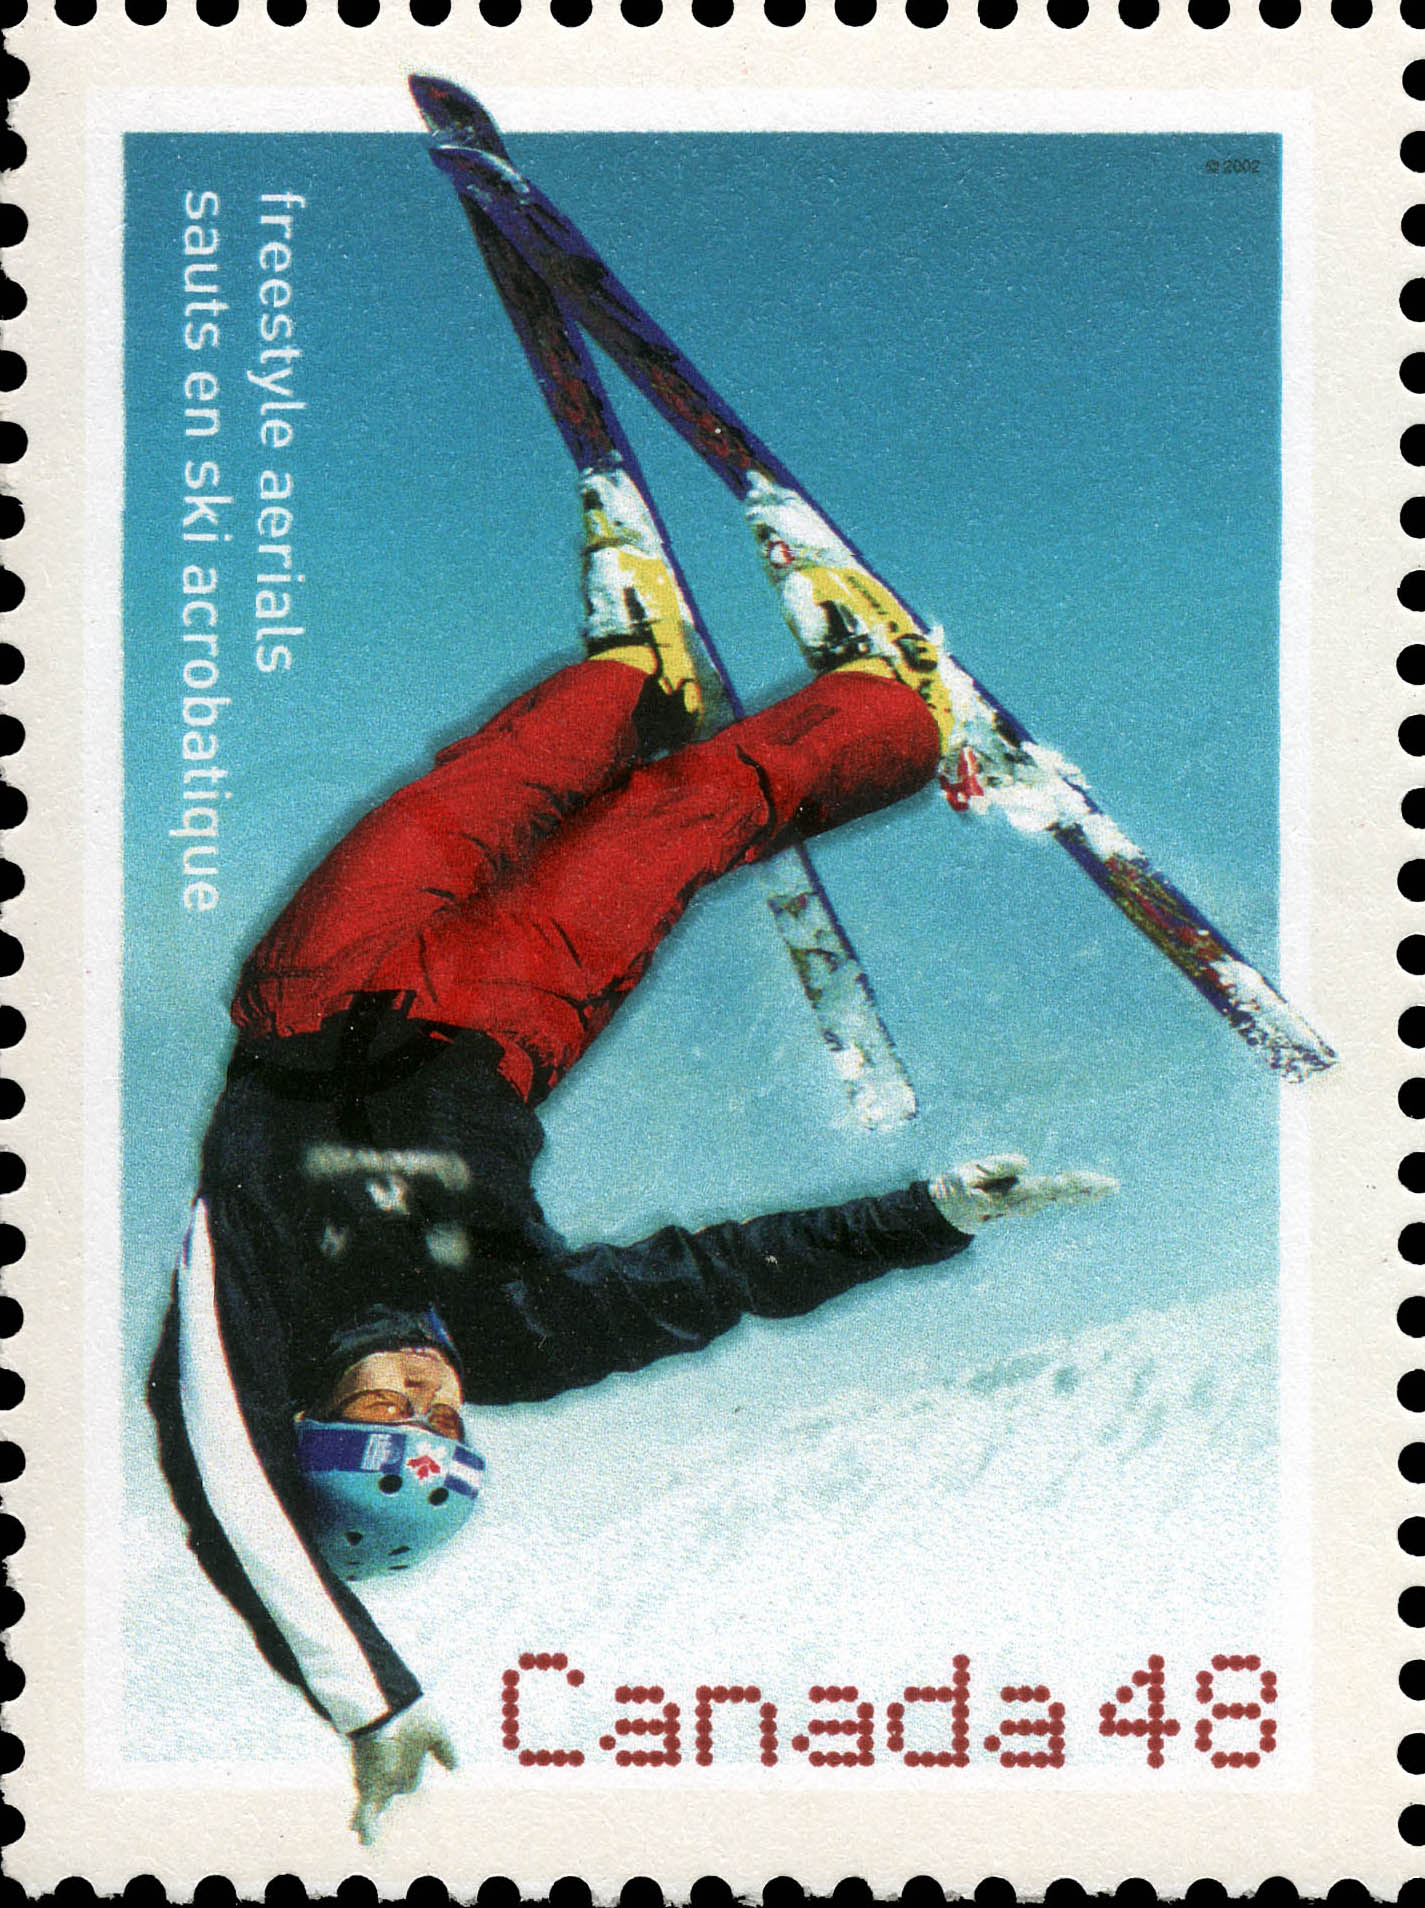 Freestyle Aerials Canada Postage Stamp | 2002 Olympic Winter Games